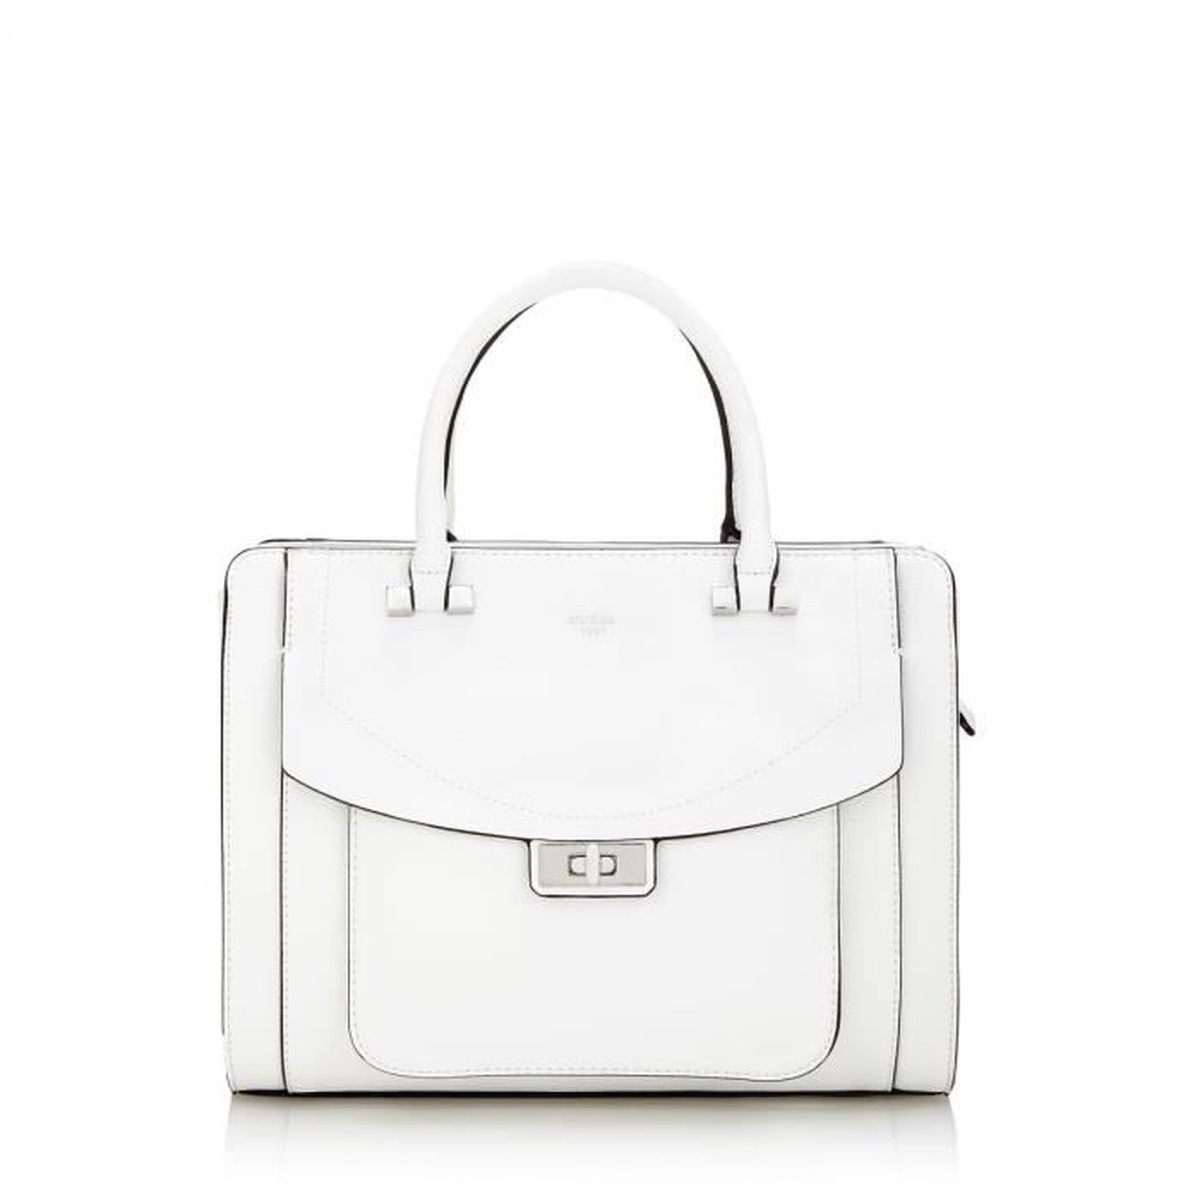 2f771a92f1 Guess - Sac à main Kingsley (HWEY6485070) whi taille - - Achat ...